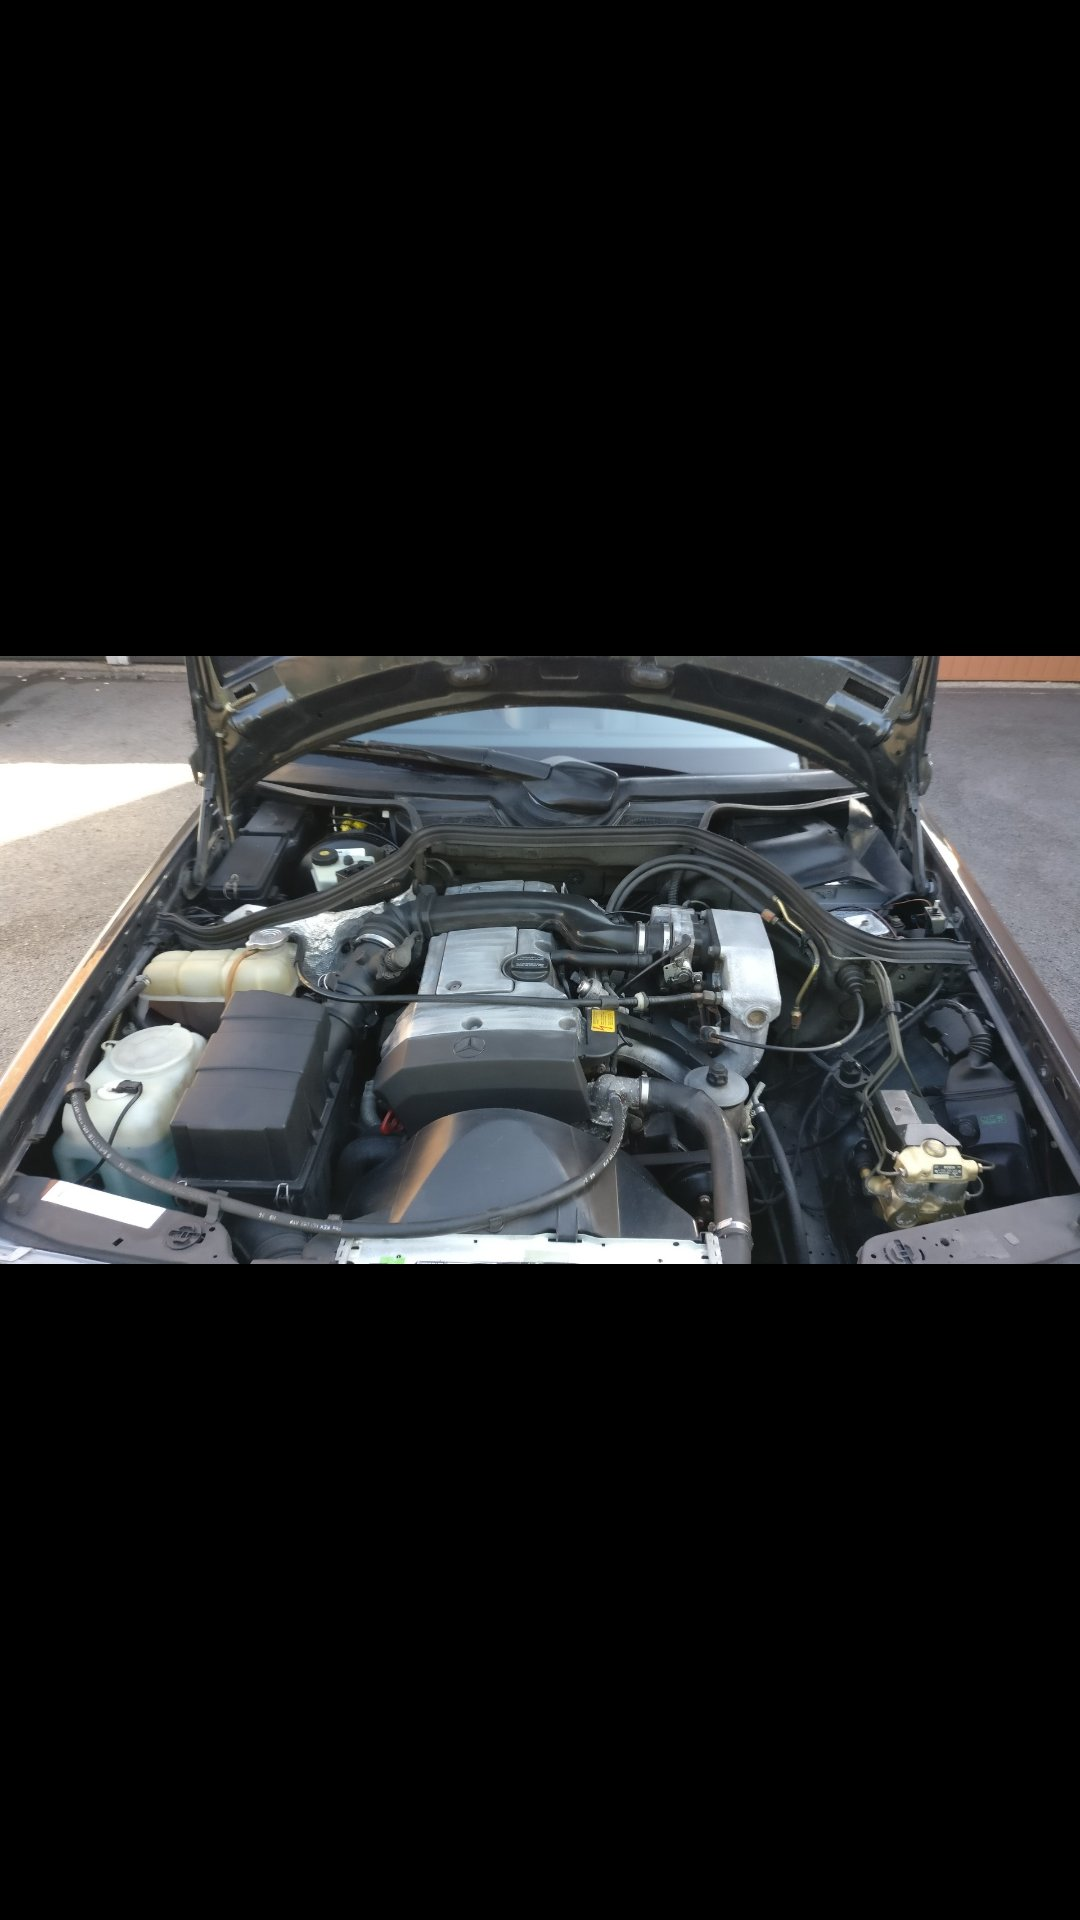 1994 Mercedes benz e class w124 e220 pillerless coupe  For Sale (picture 5 of 6)